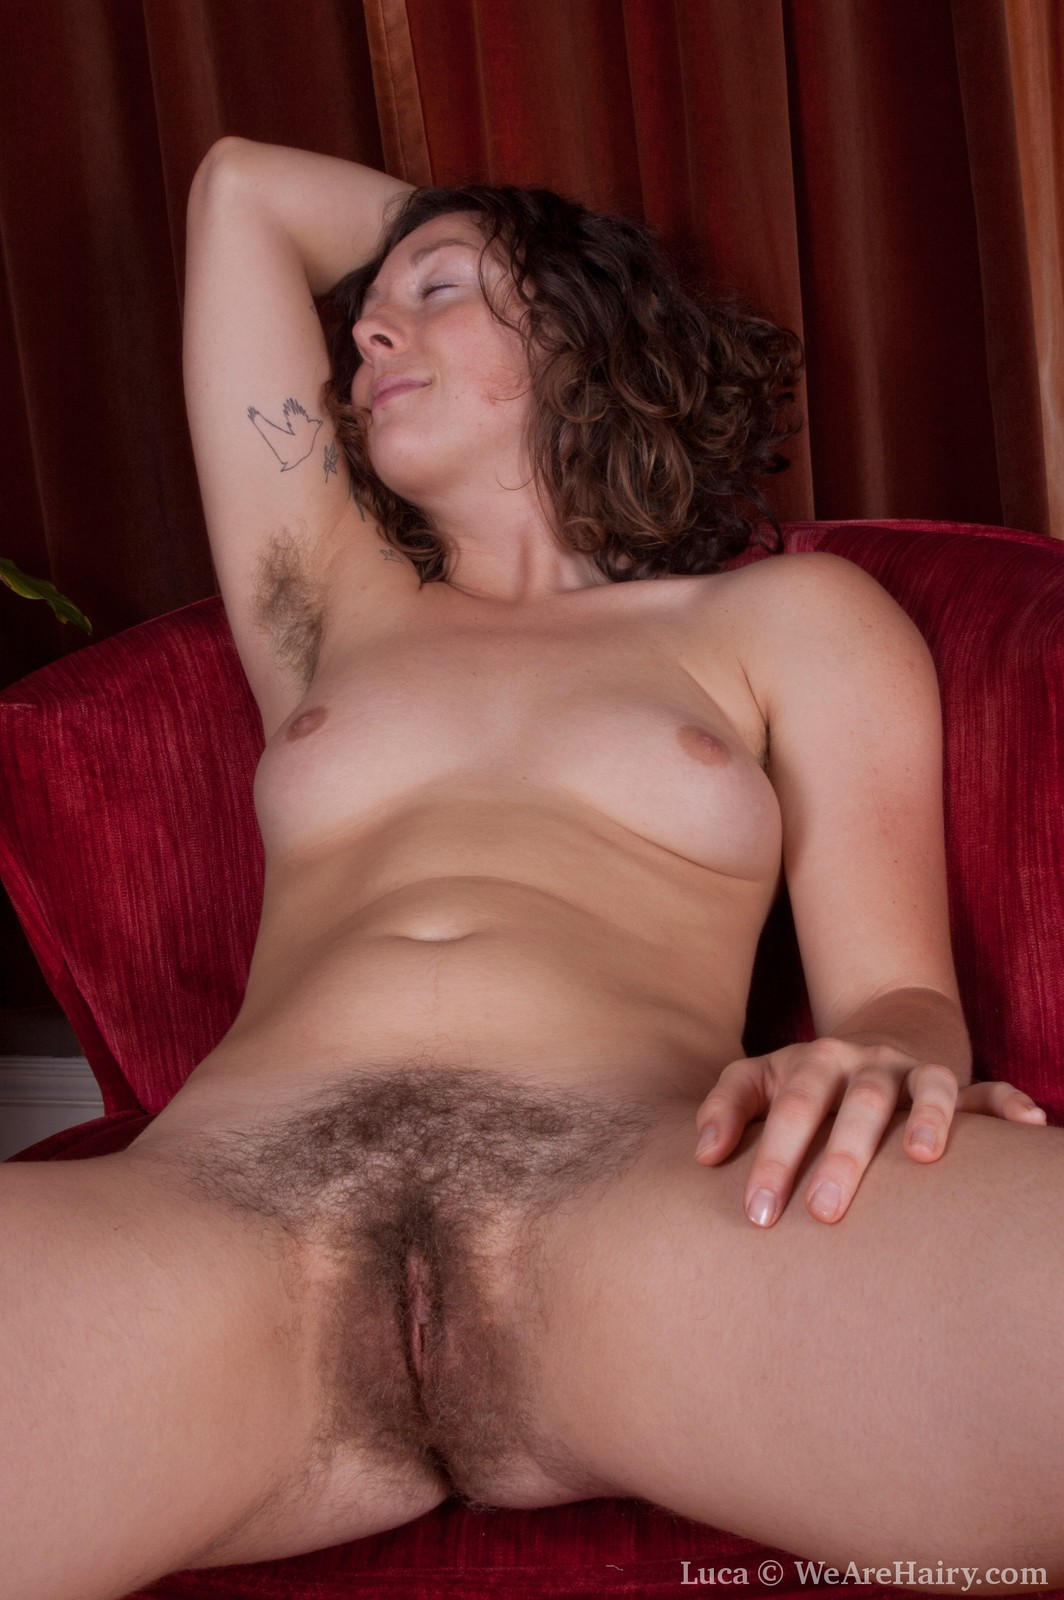 Hairy female escorts hairy female escorts psoztw hot porn ~ hairy female escorts psoztw xxx movies -